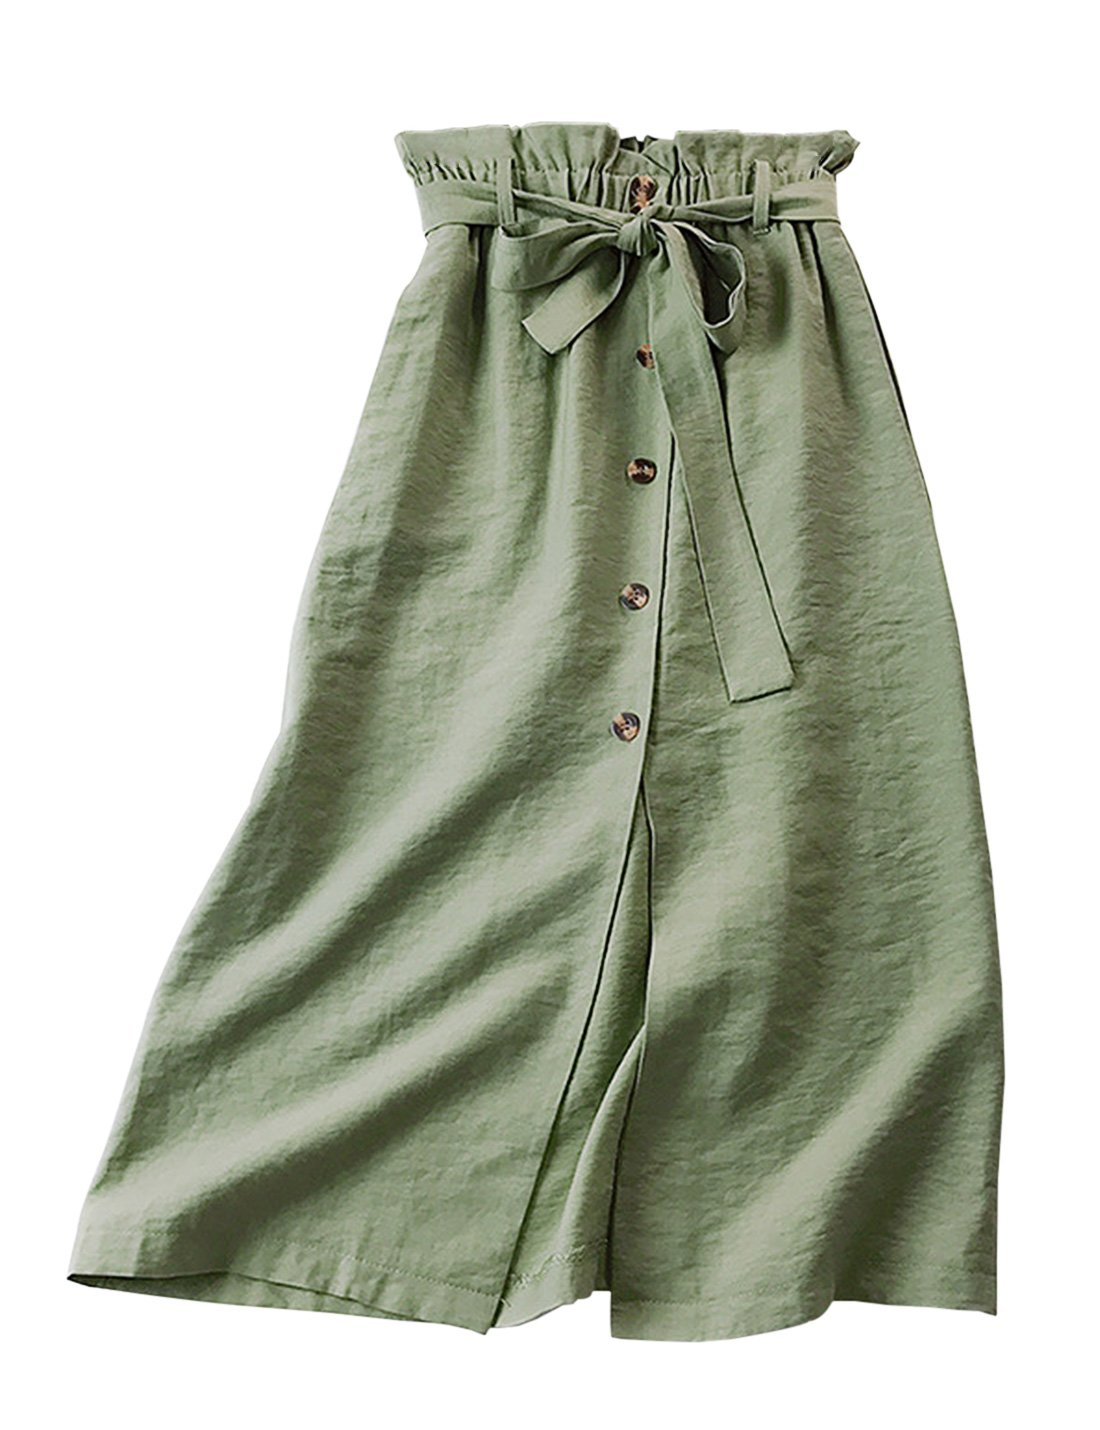 Yimoon Women's Solid Bowknot Belted Elastic Waist Cotton Linen Midi Skirt Button Front A-Line Casual Skirt with Pockets (Green, One Size)